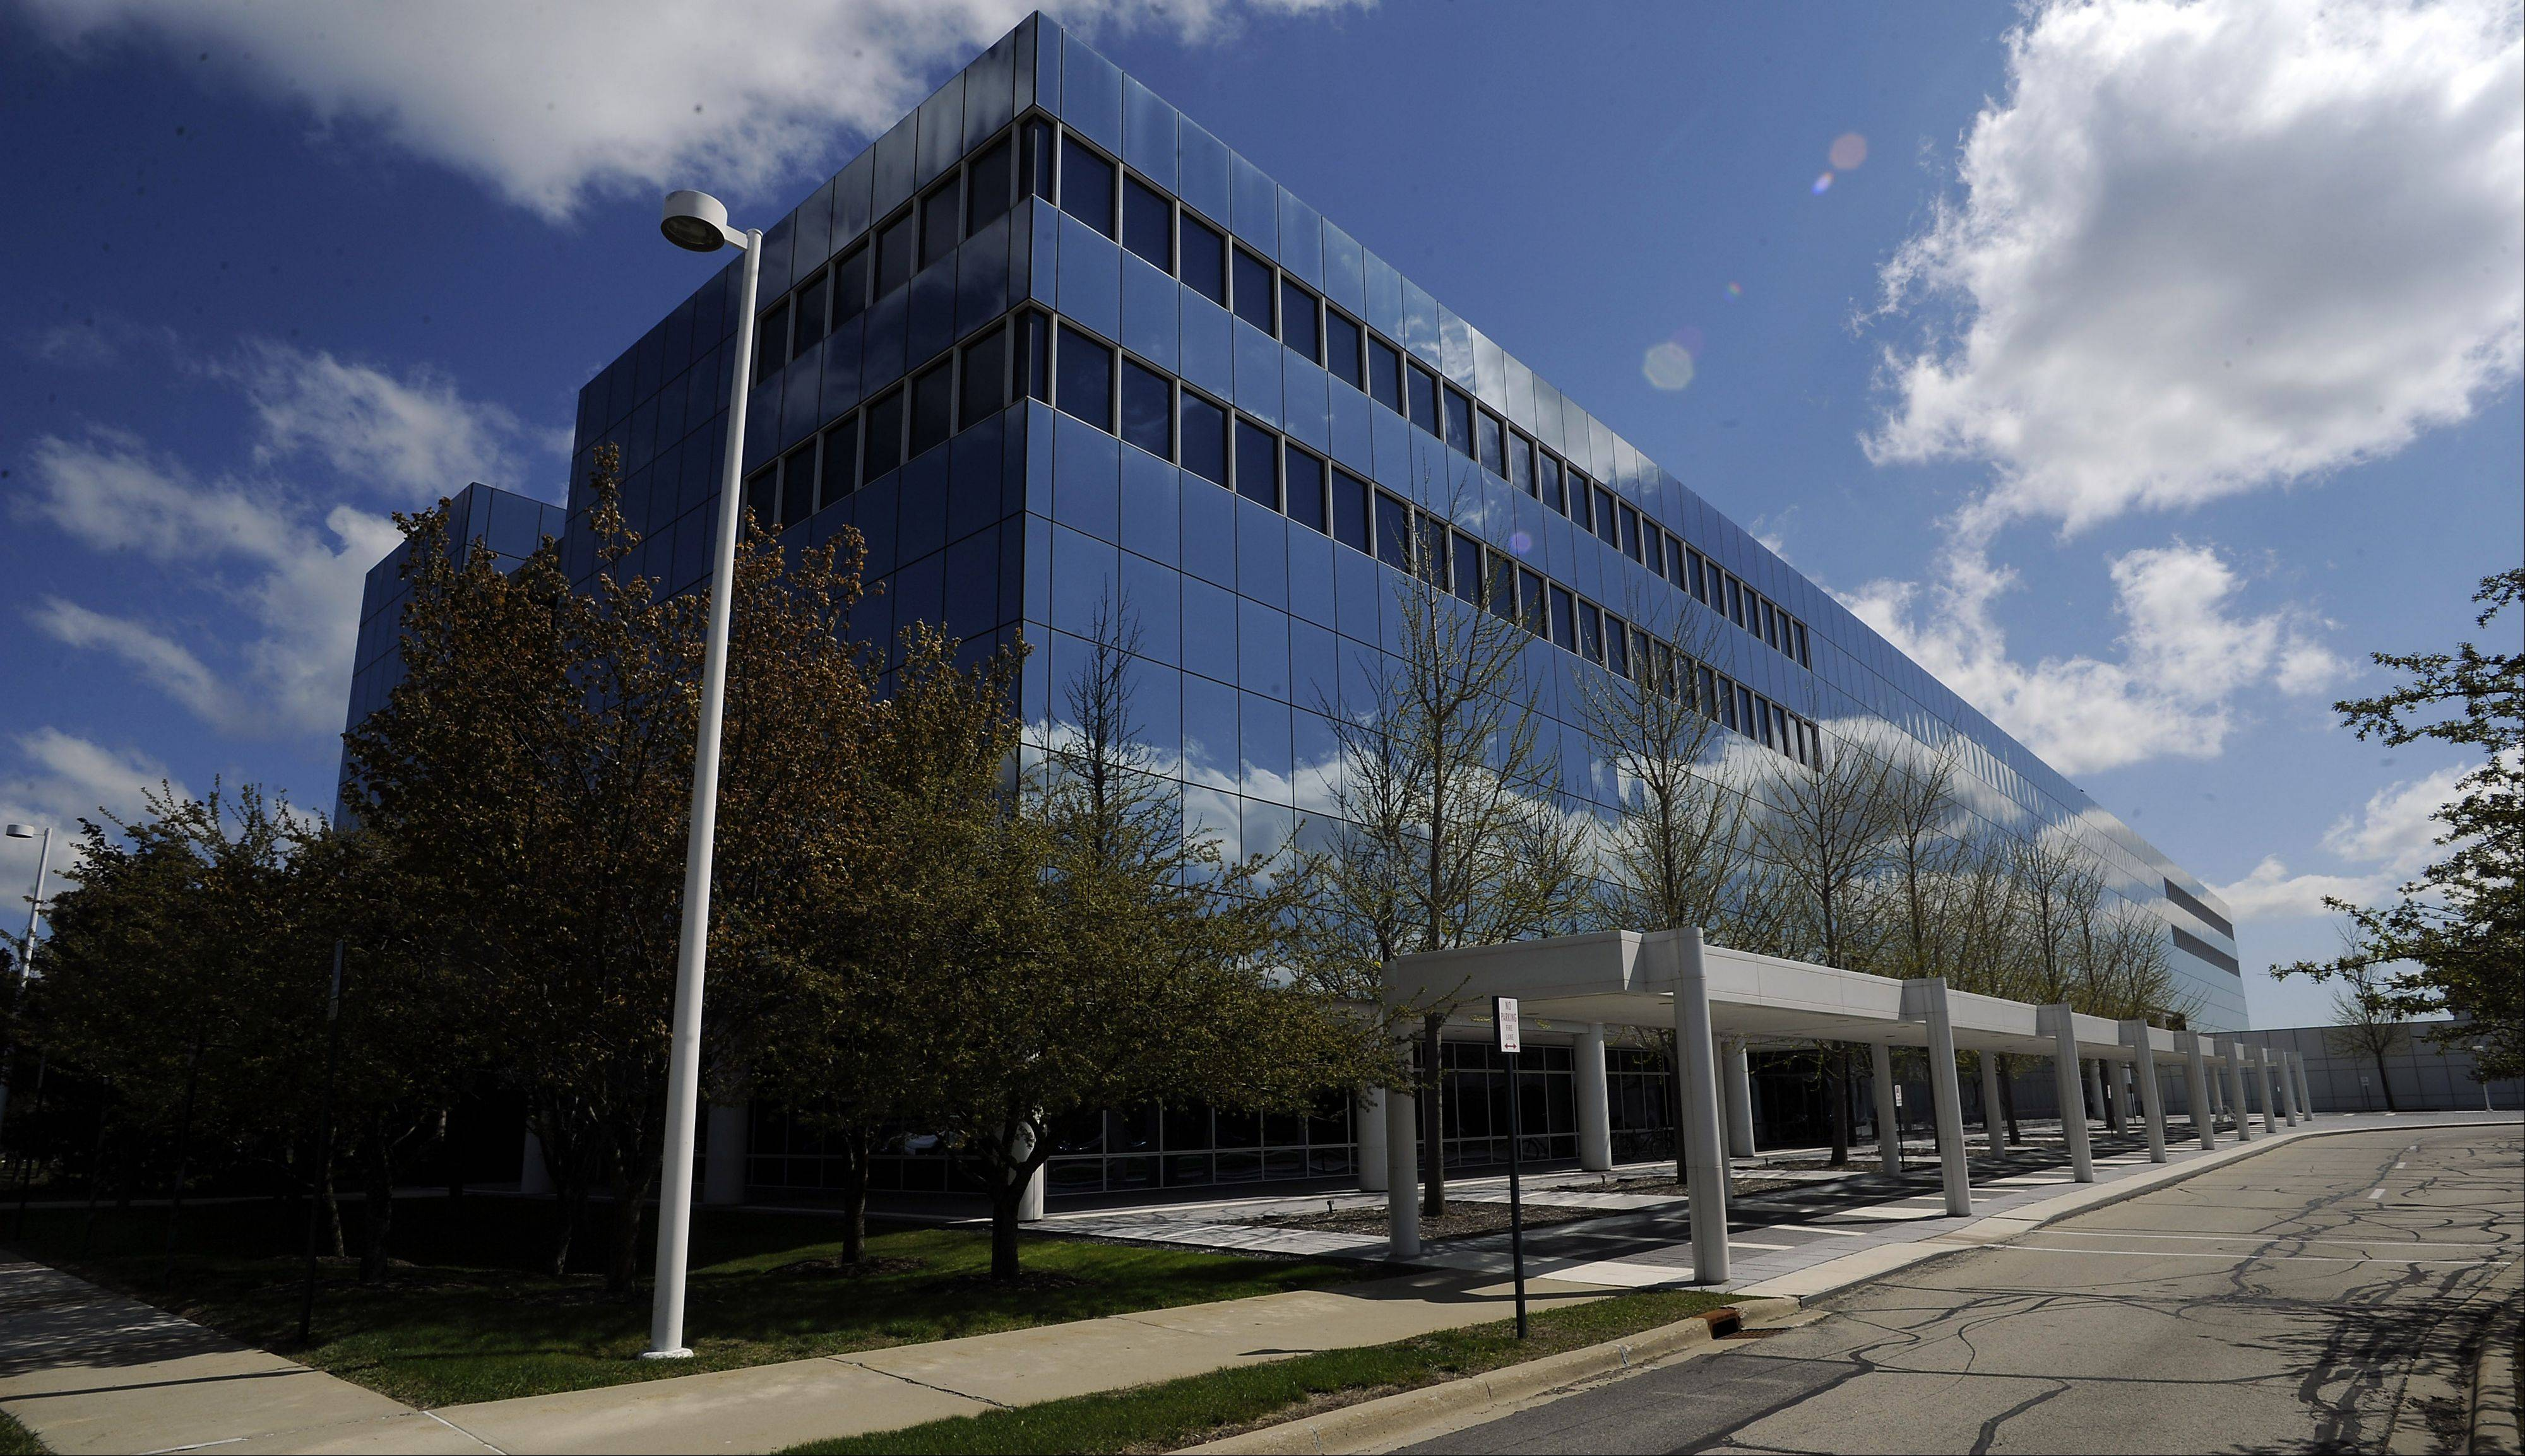 Hoffman Estates and Illinois officials are worried that Sears Holdings might pack its bags and leave the Prairie Stone campus area in Hoffman Estates, taking valuable tax revenue with it.